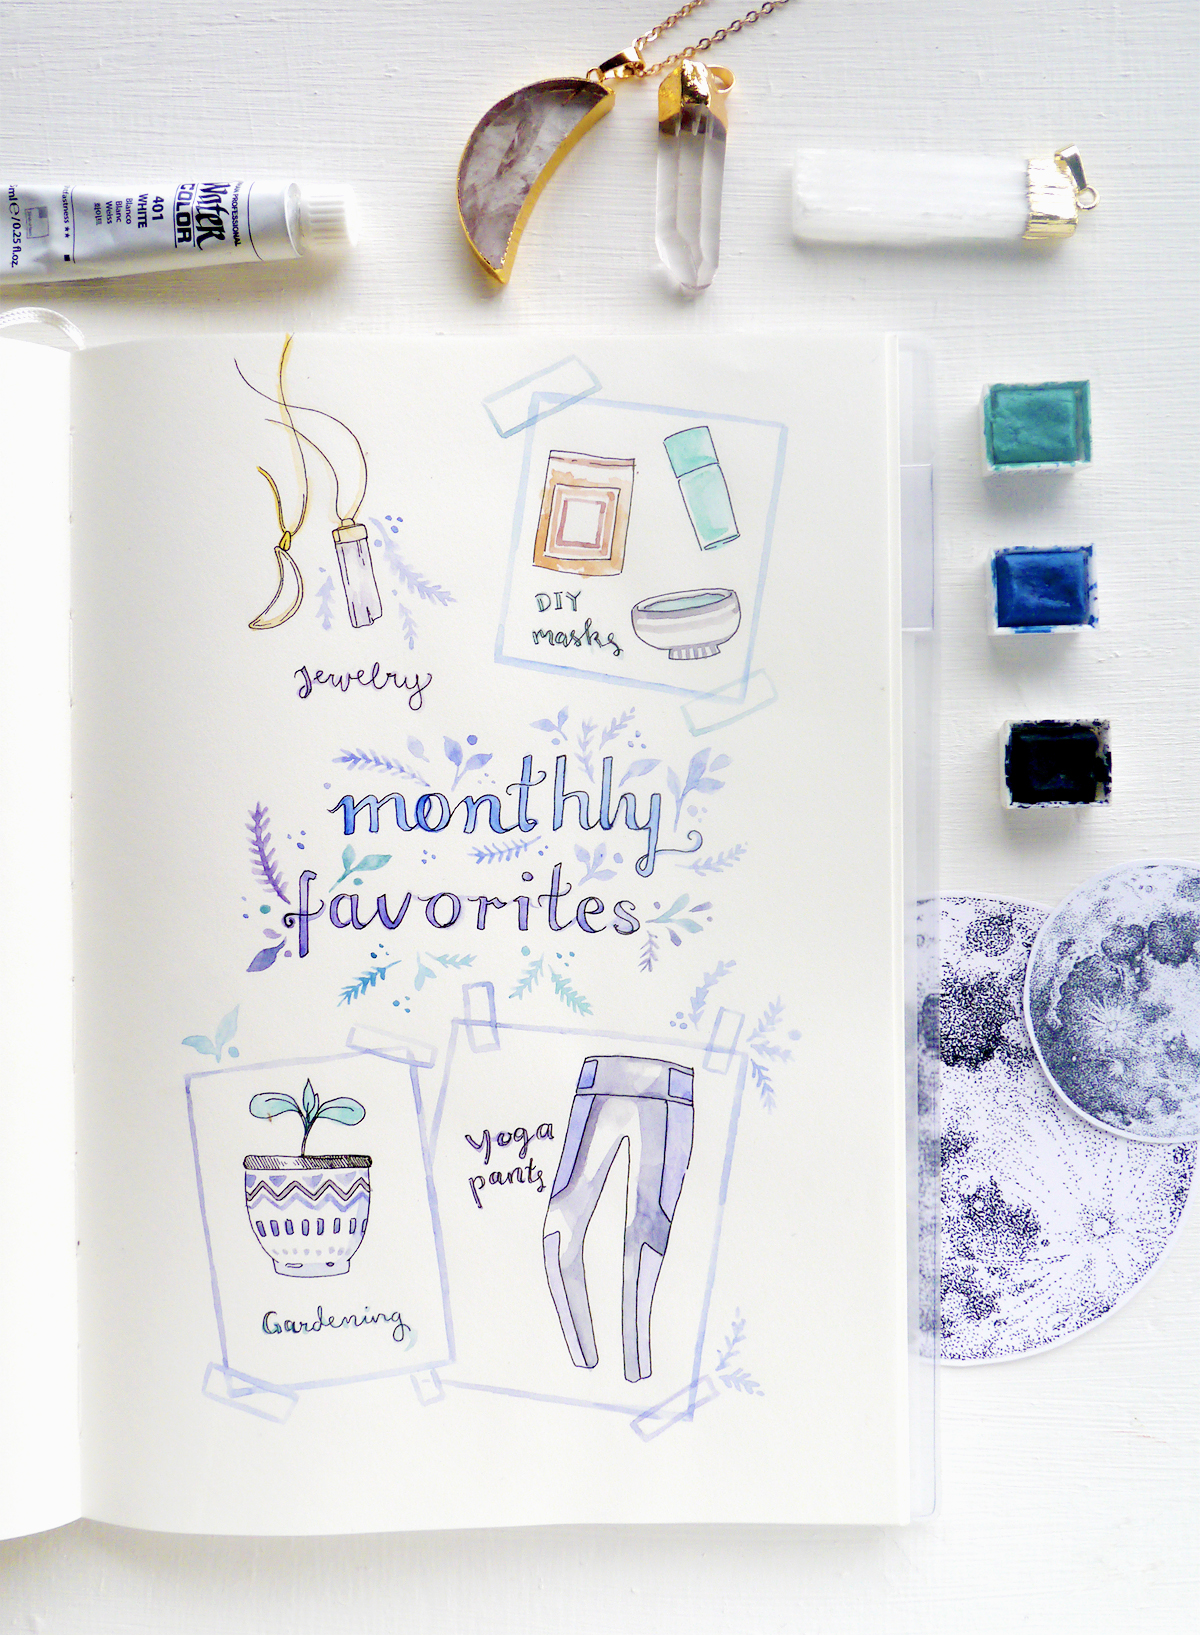 It's been a while since I listed my monthly favorites, so when I needed a little break, the moment was perfect for this sketch in my art journal!  April went by so quickly but with  lots of creative drive  - and as I'm trying to balance that creativity with work, daily life, and health, I came up with these favorite little things here.